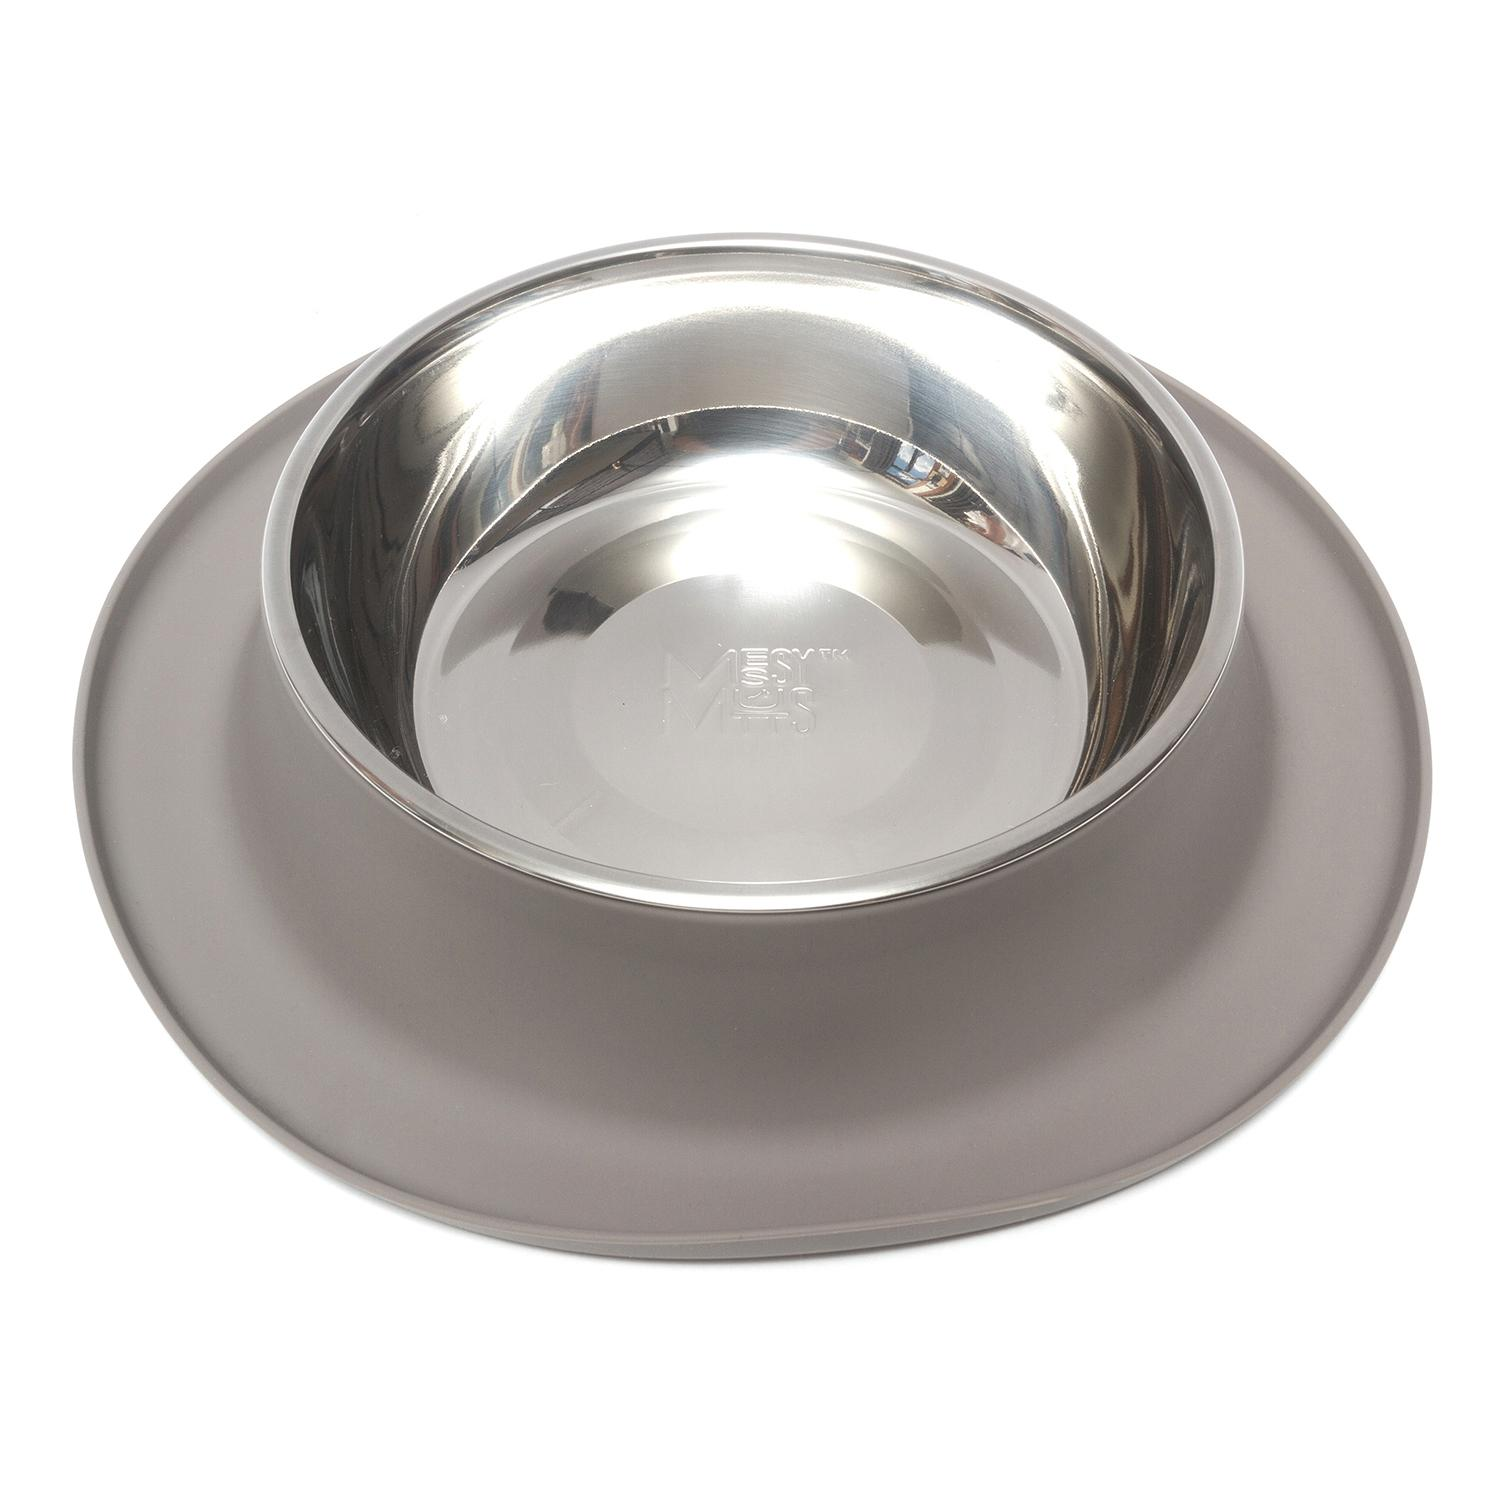 Messy Mutts Silicone Cat Feeder, Grey, X-Large